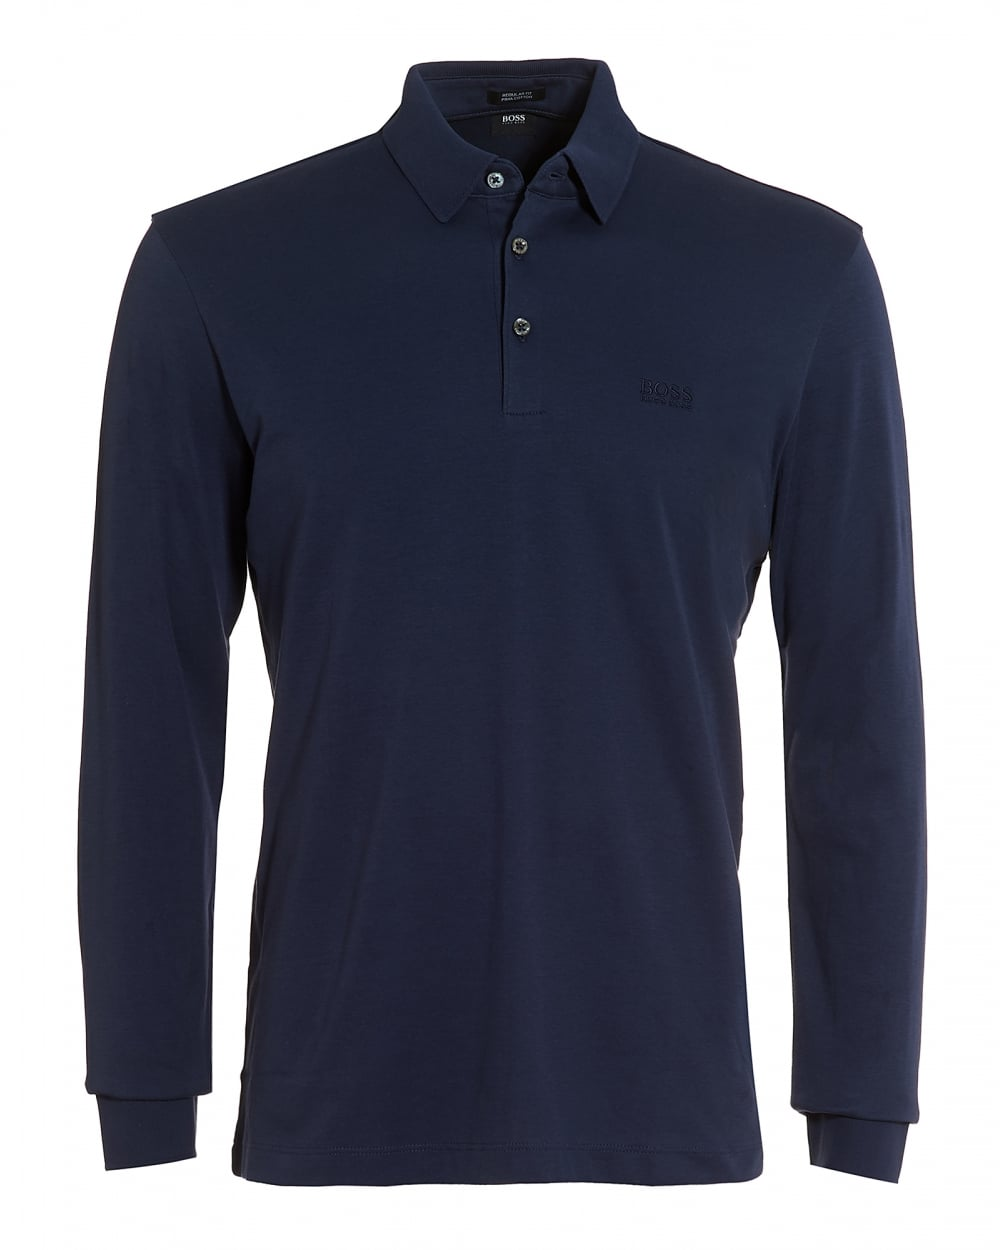 Hugo boss black mens phillian long sleeve blue regular fit for Men s regular fit shirts